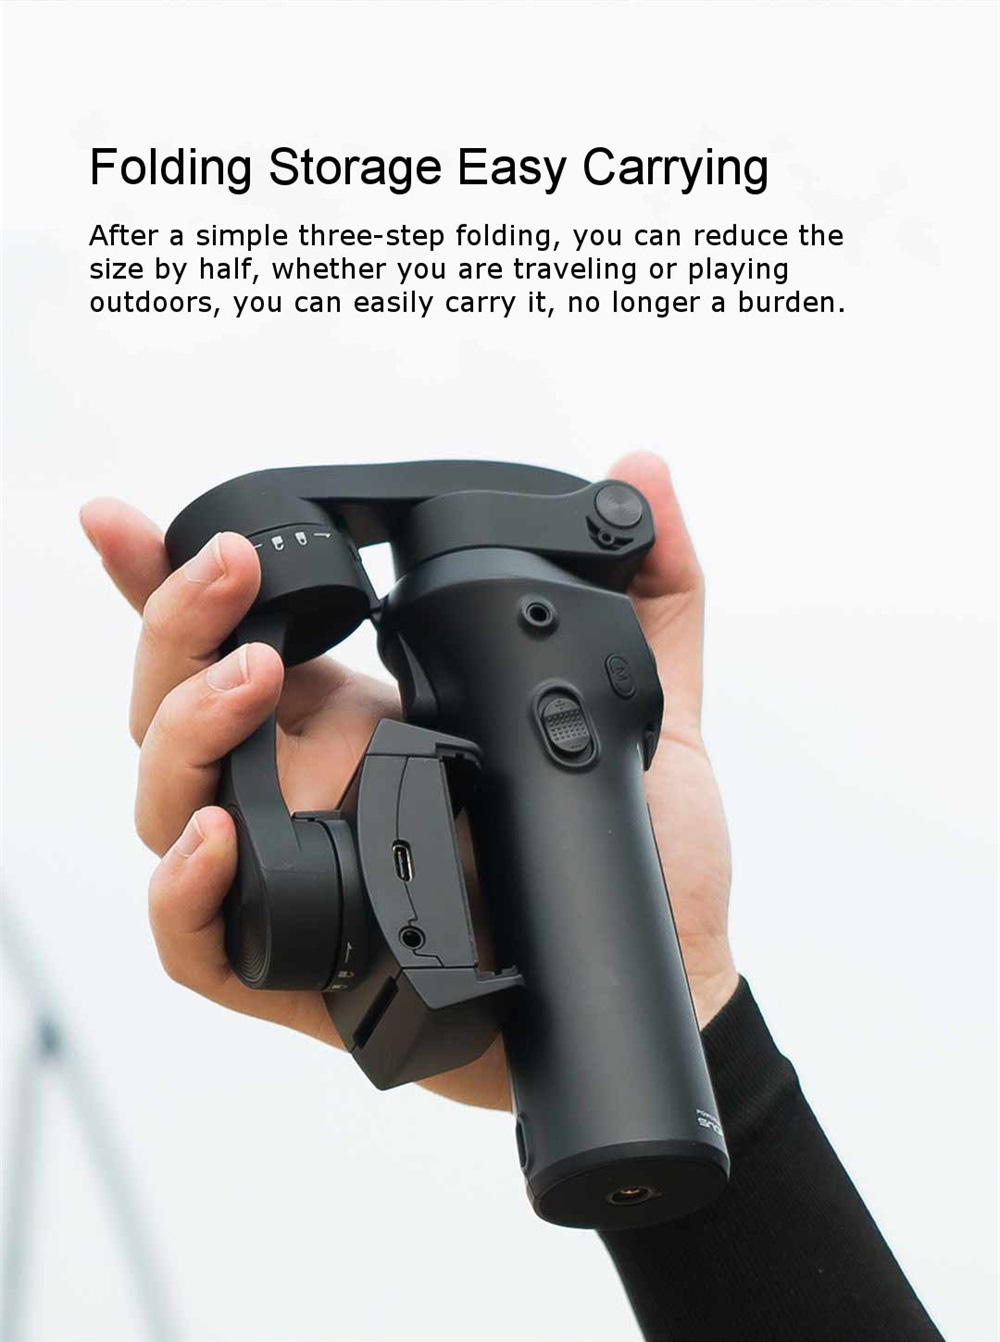 snoppa folding handheld stabilizer easy carrying